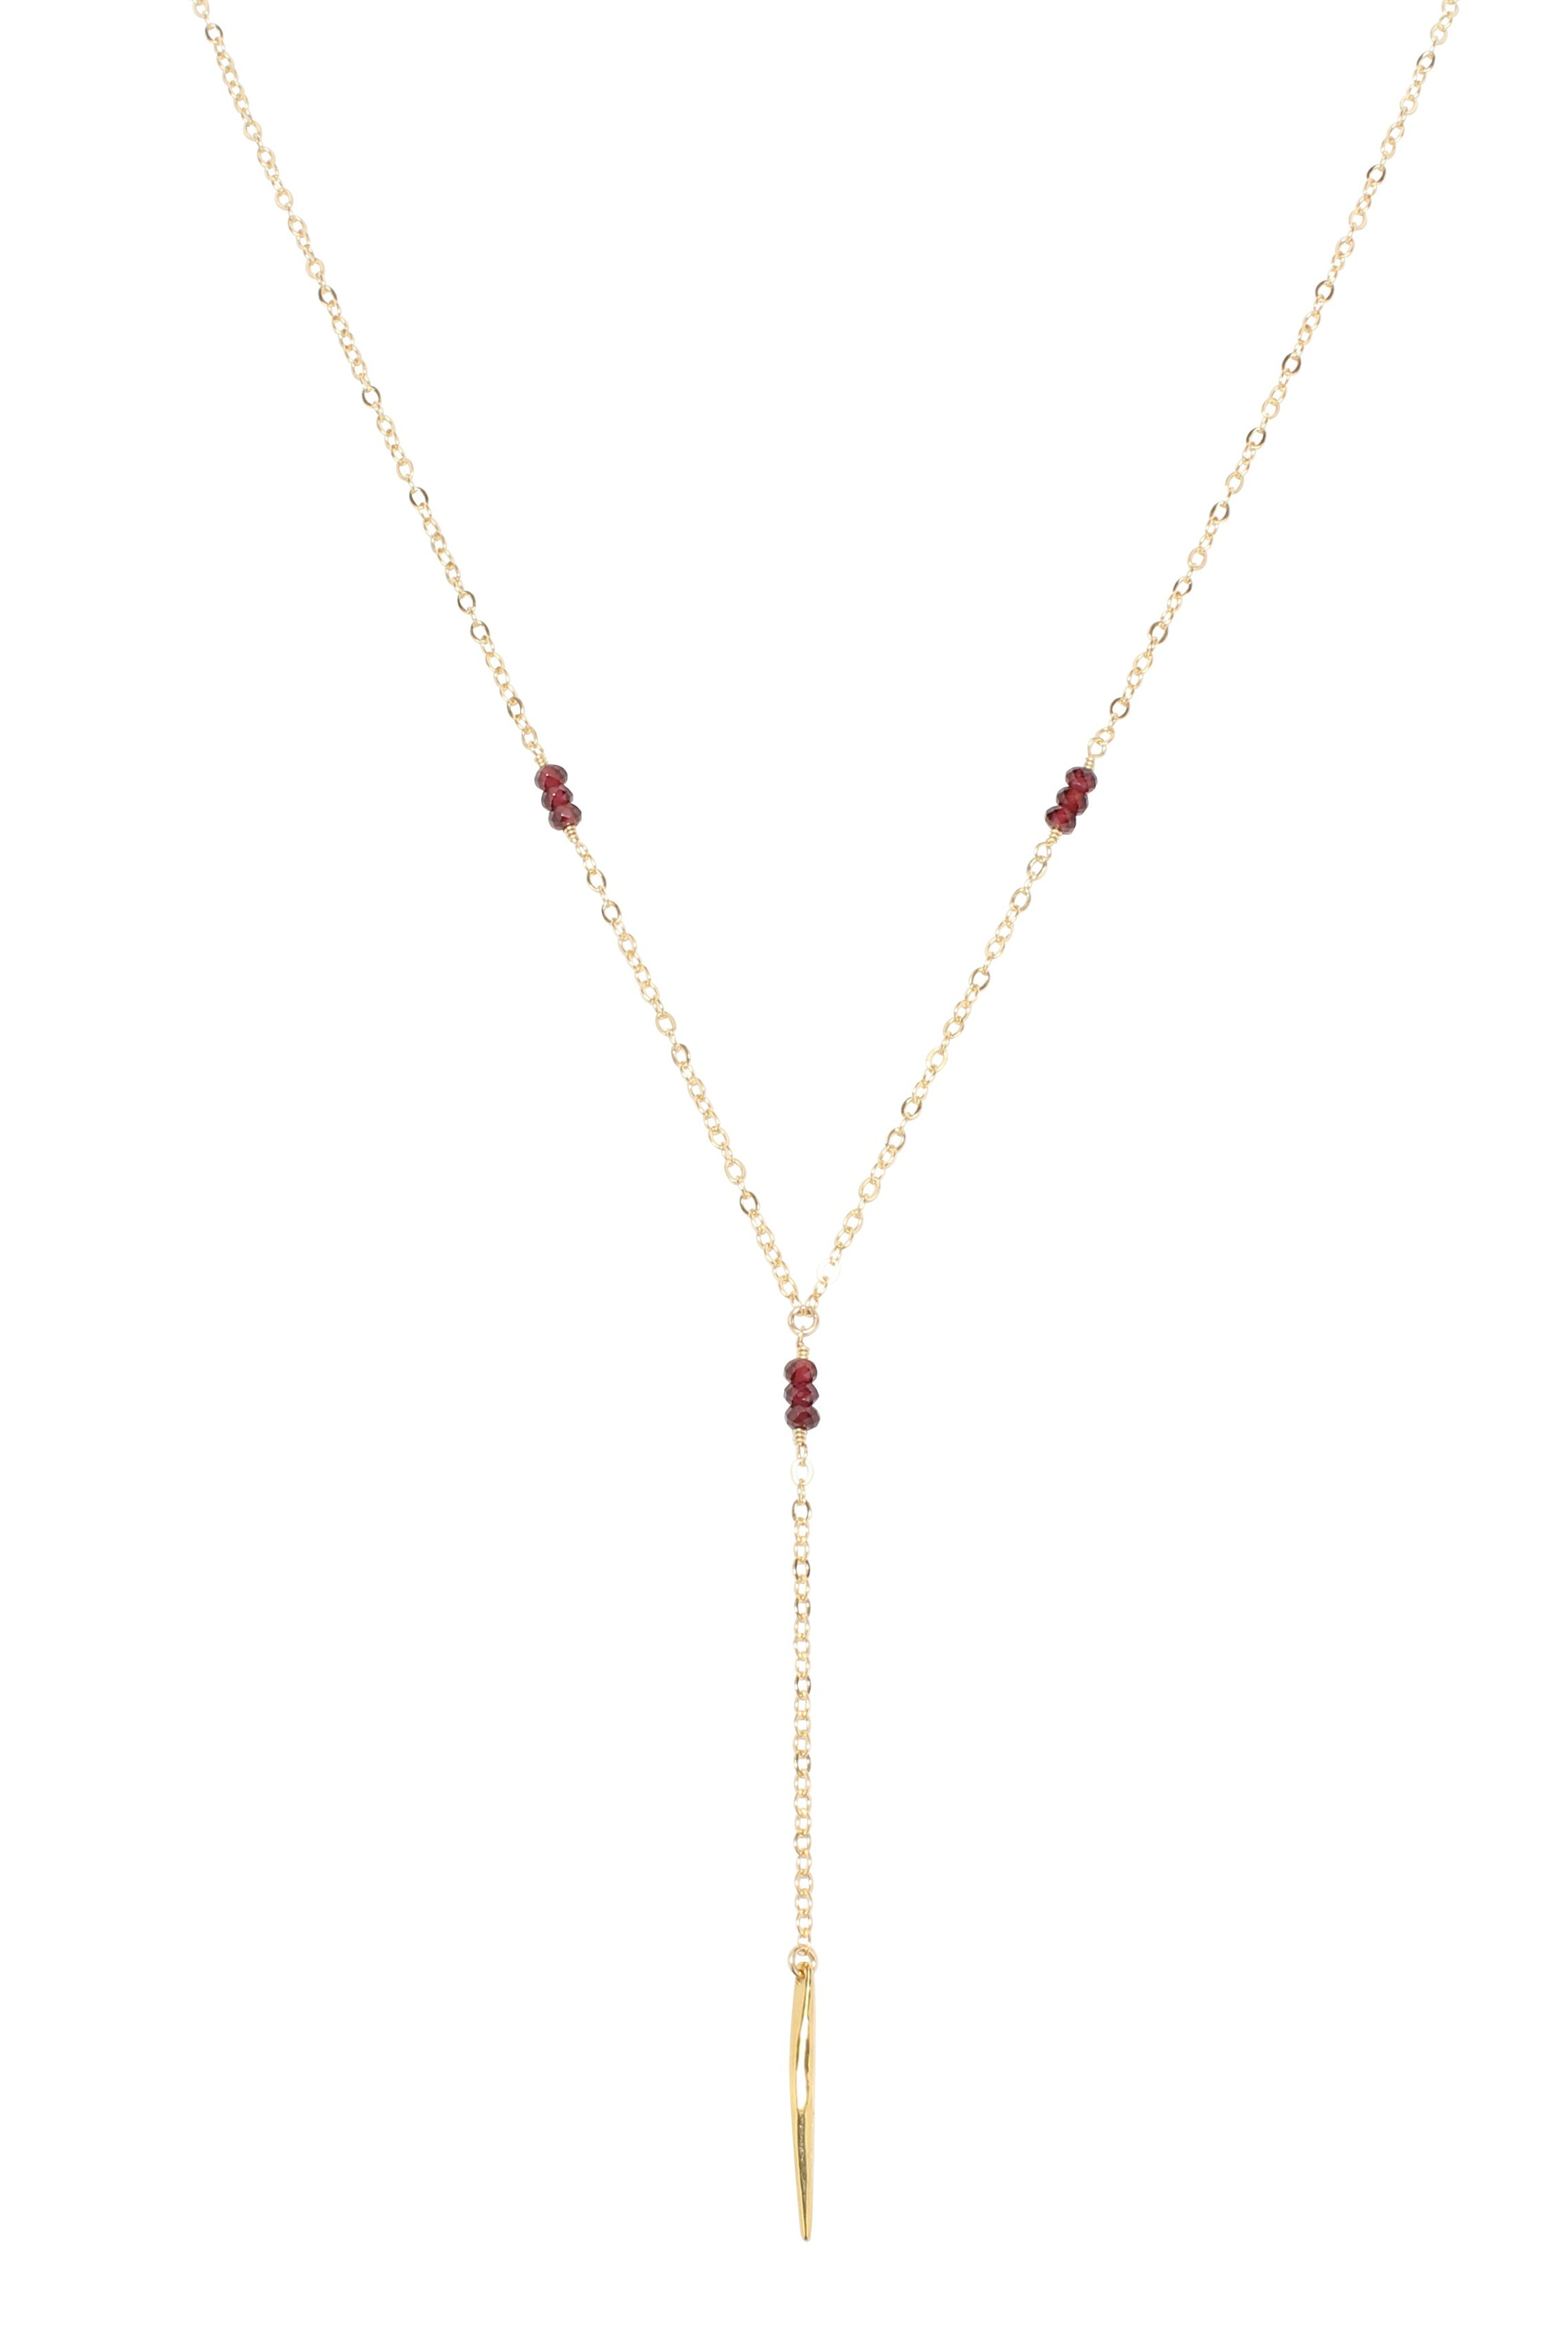 wendy nichol products pendant garnet cut necklace diamond